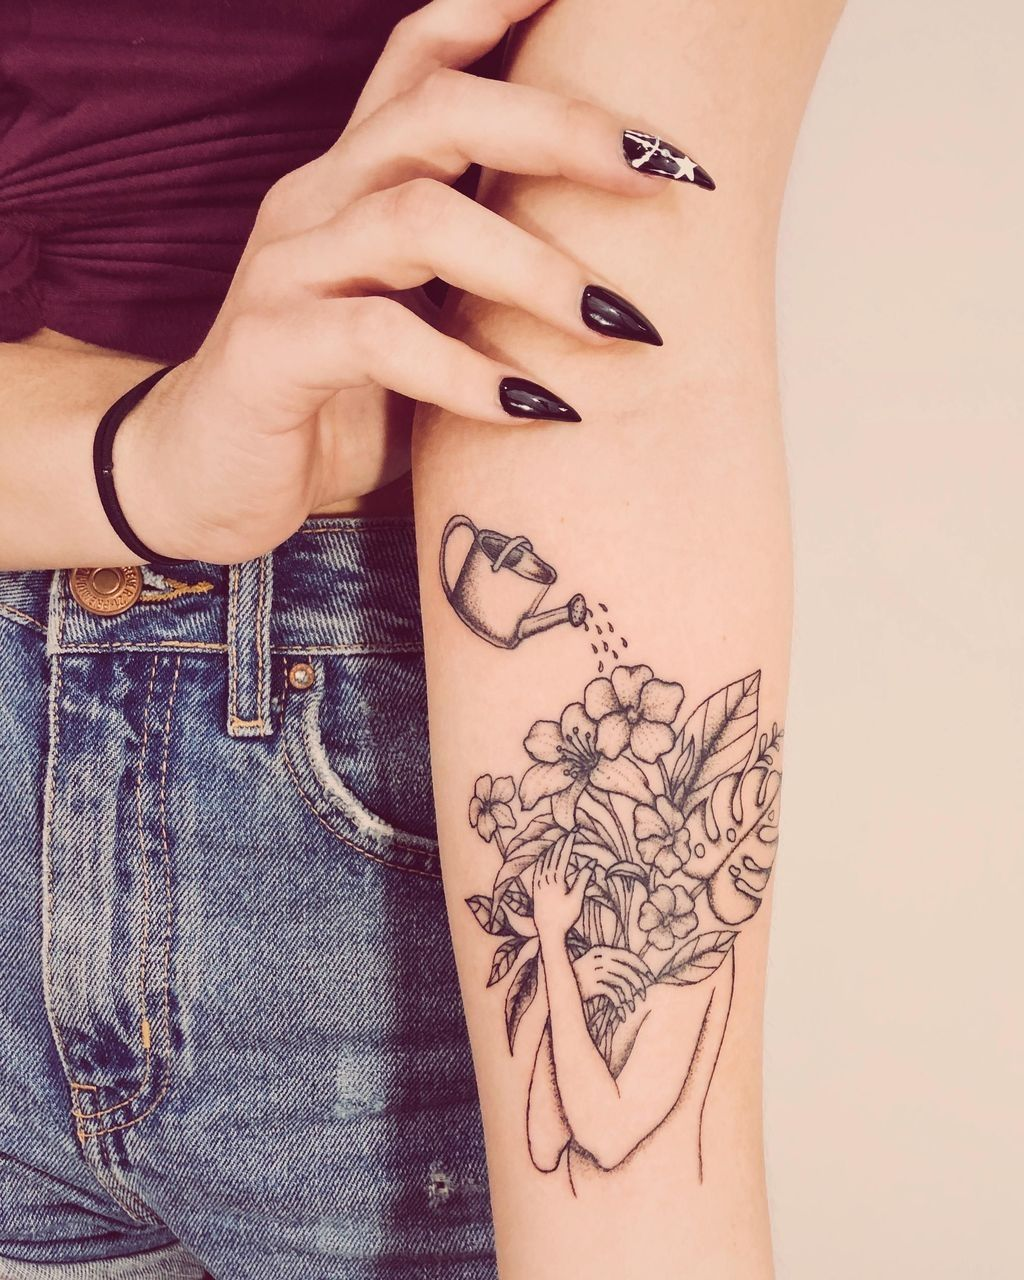 40 Hottest Tattoos Ideas For Every Girl Who Want That Looks